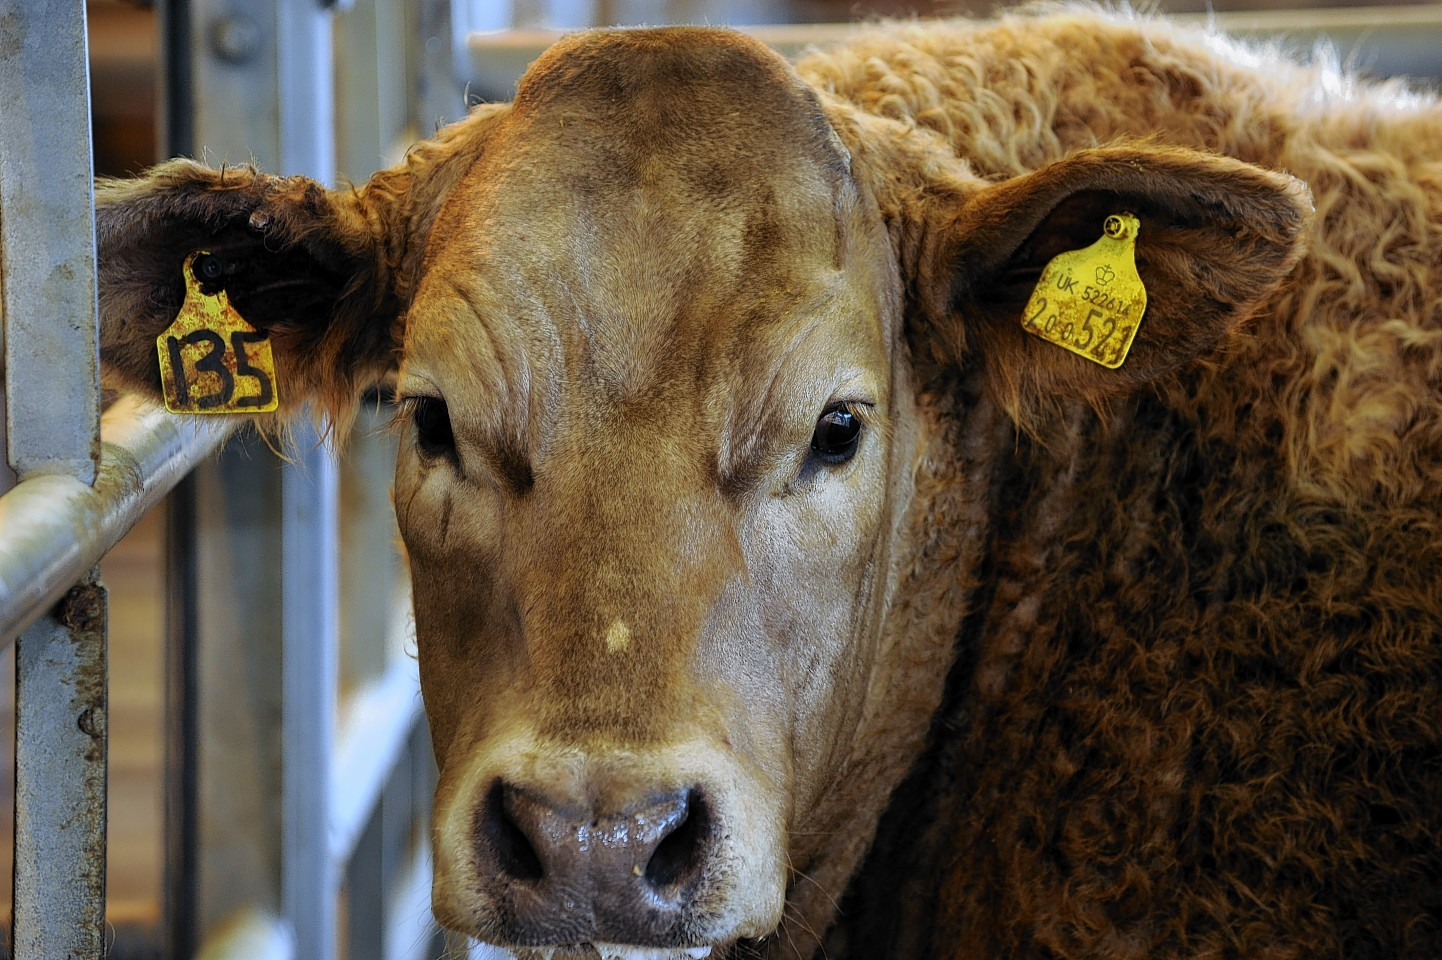 Farmers are being advised on how best to select, purchase and look after the bulls.